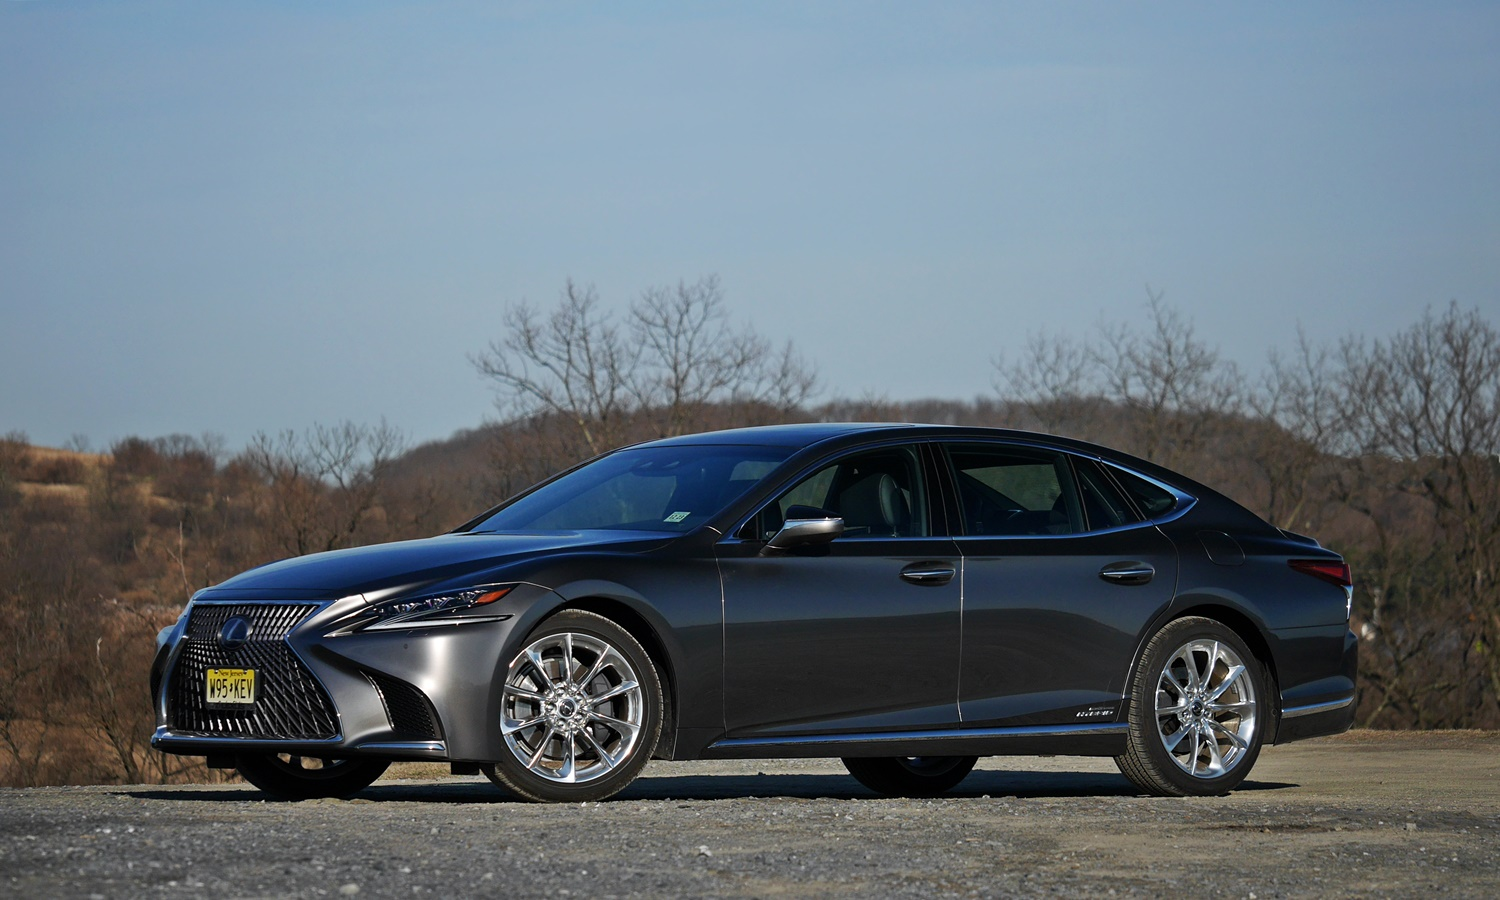 Lexus LS Photos: Lexus LS 500h front quarter view